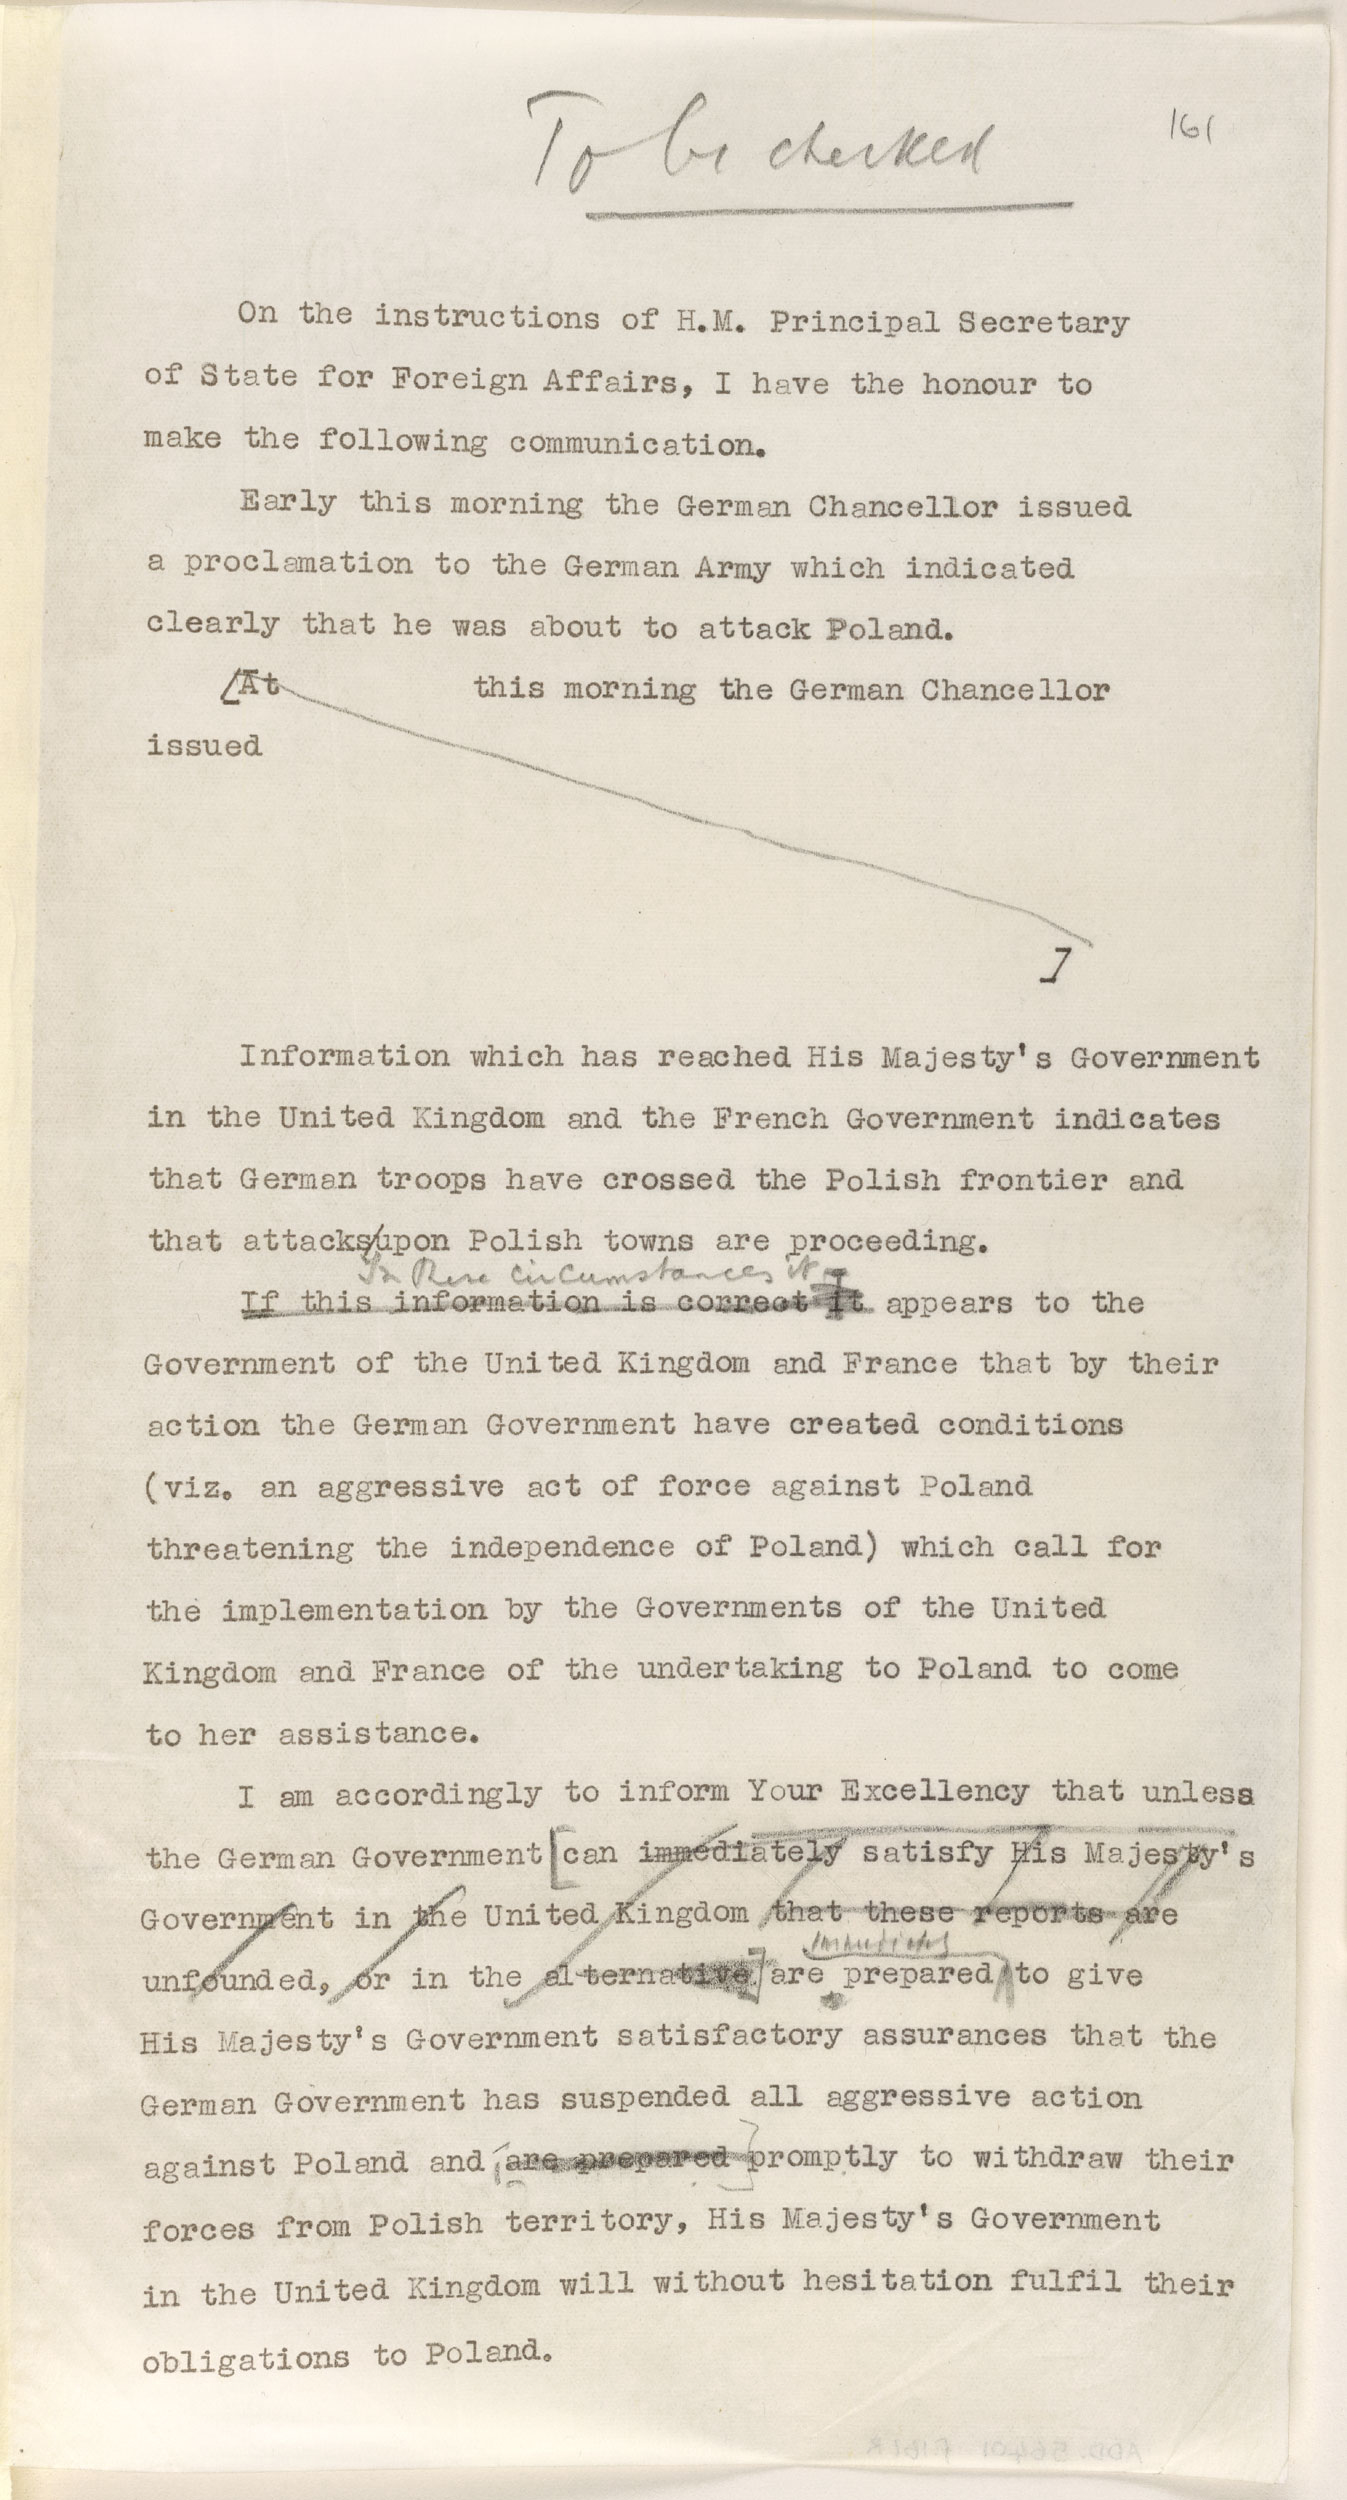 World War II ultimatum letter